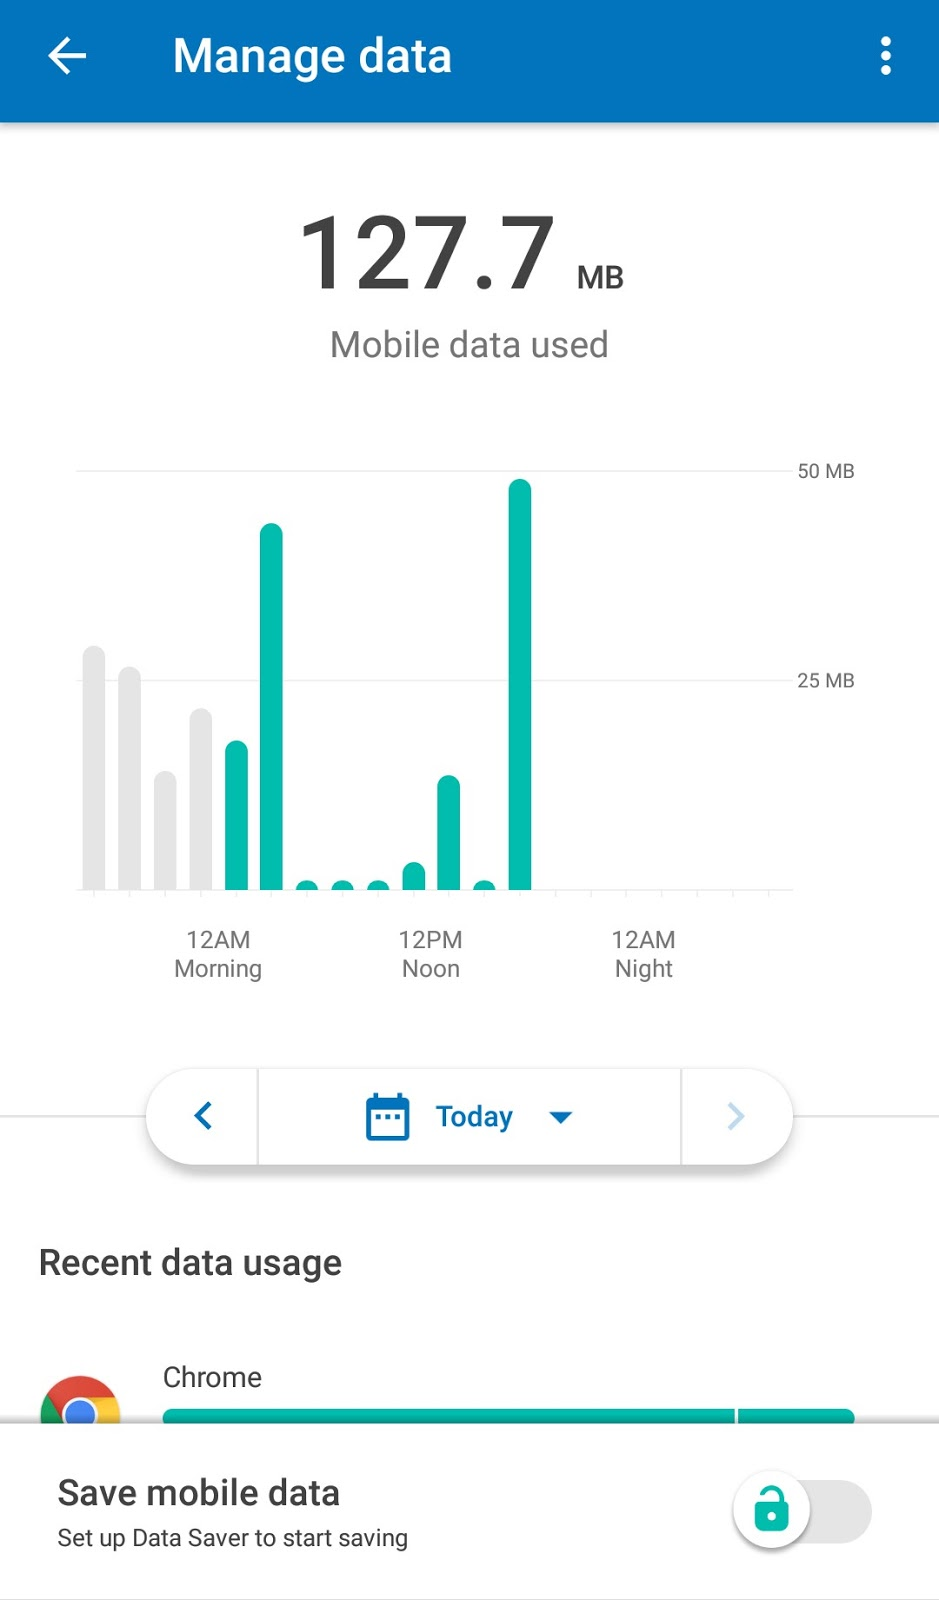 A more elaborate view of data usage